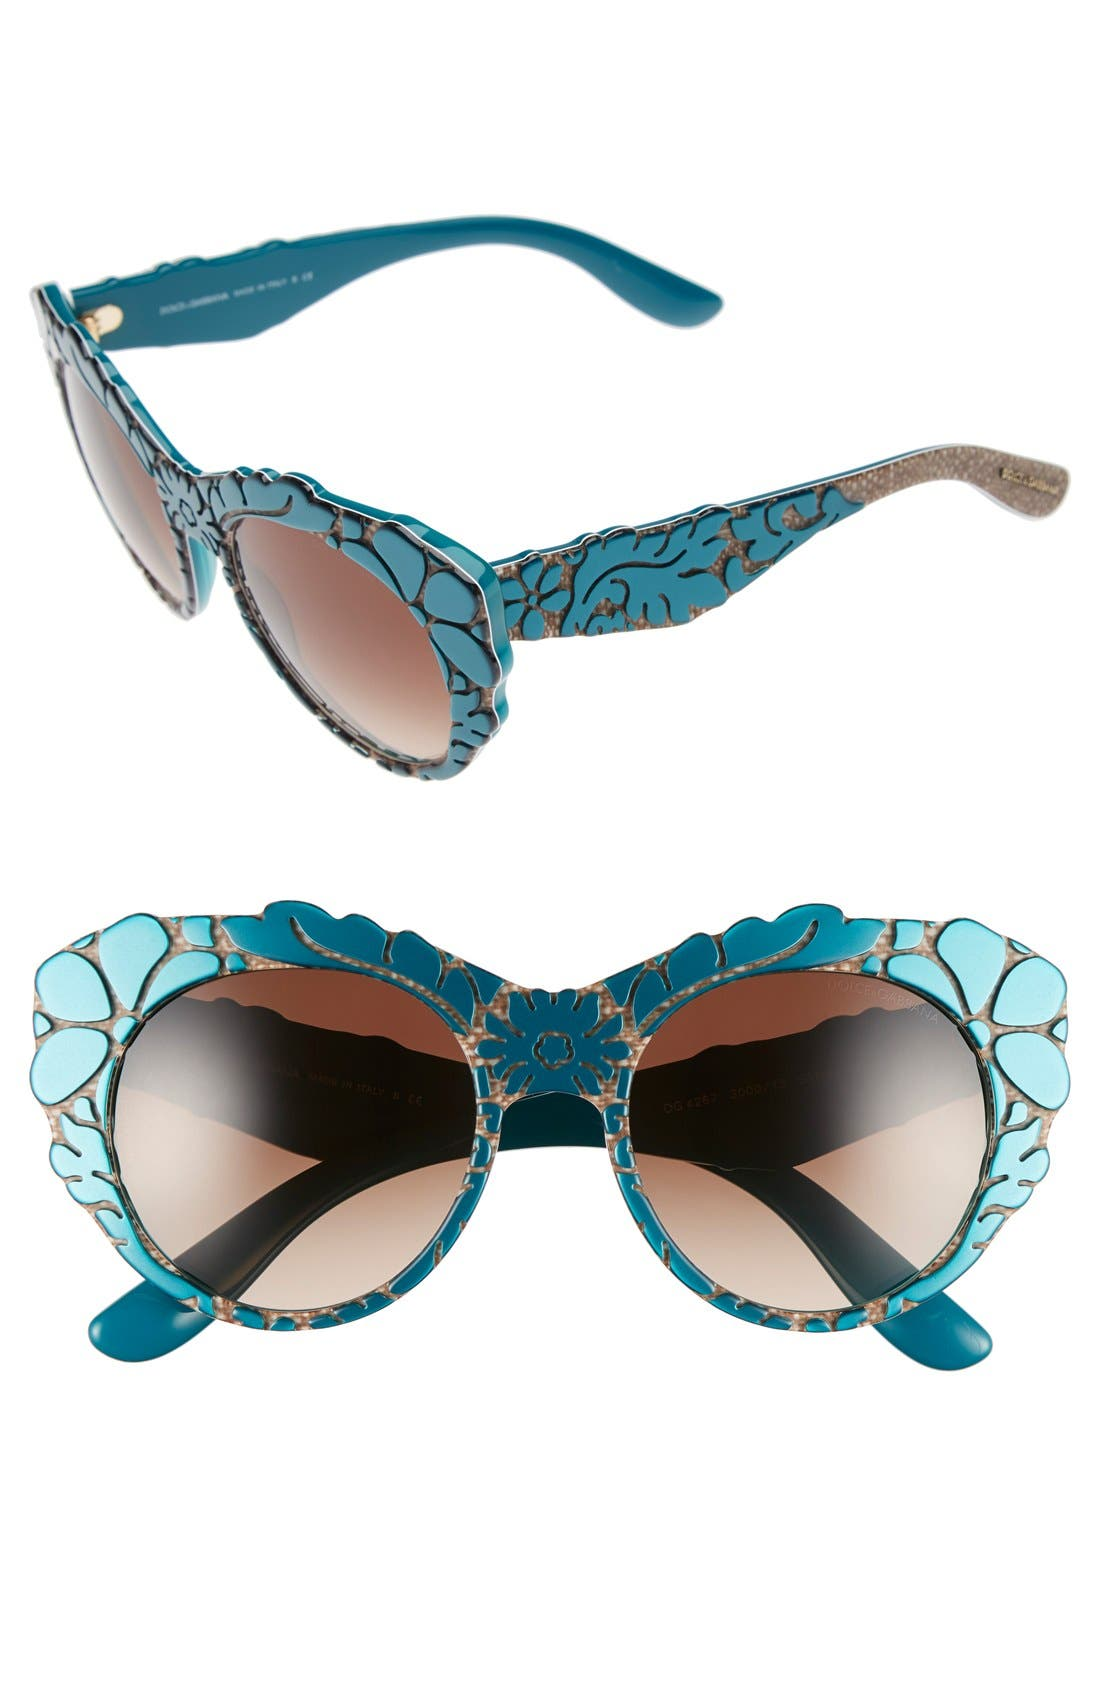 Main Image - Dolce&Gabbana 53mm Sunglasses